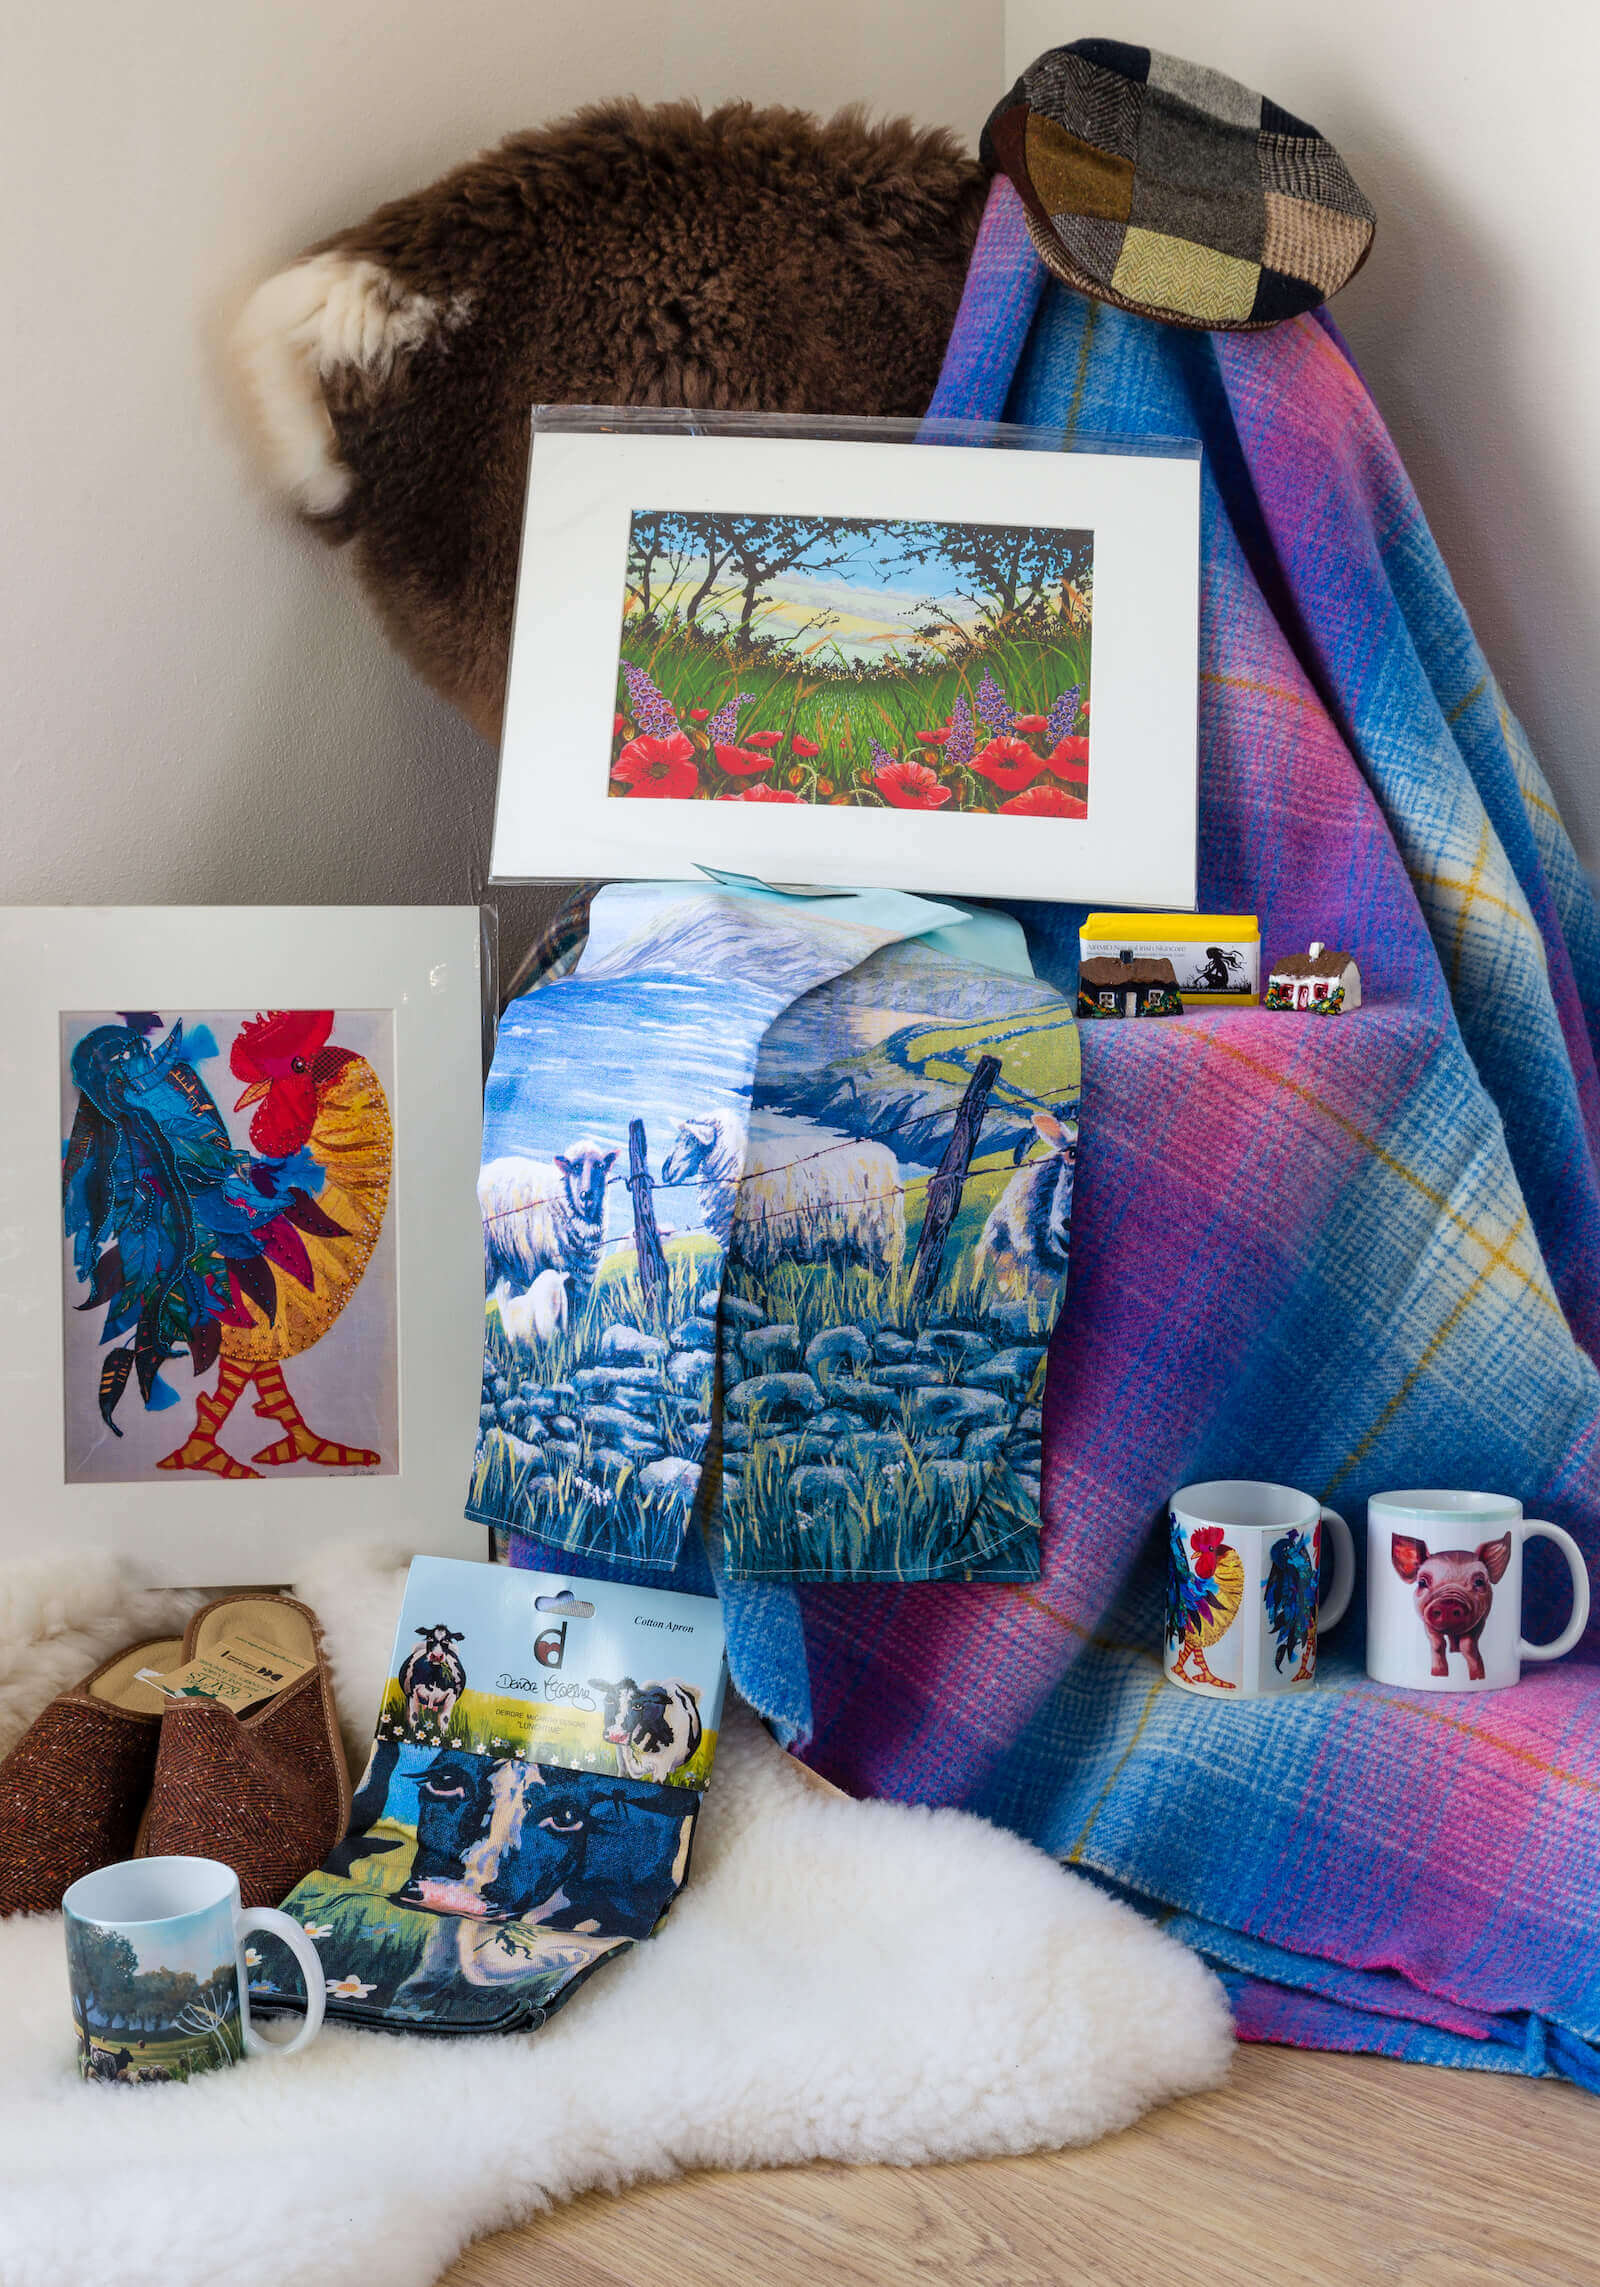 Kerry Crafts and Prints | Valentia Island Farmhouse Dairy Craft Shop